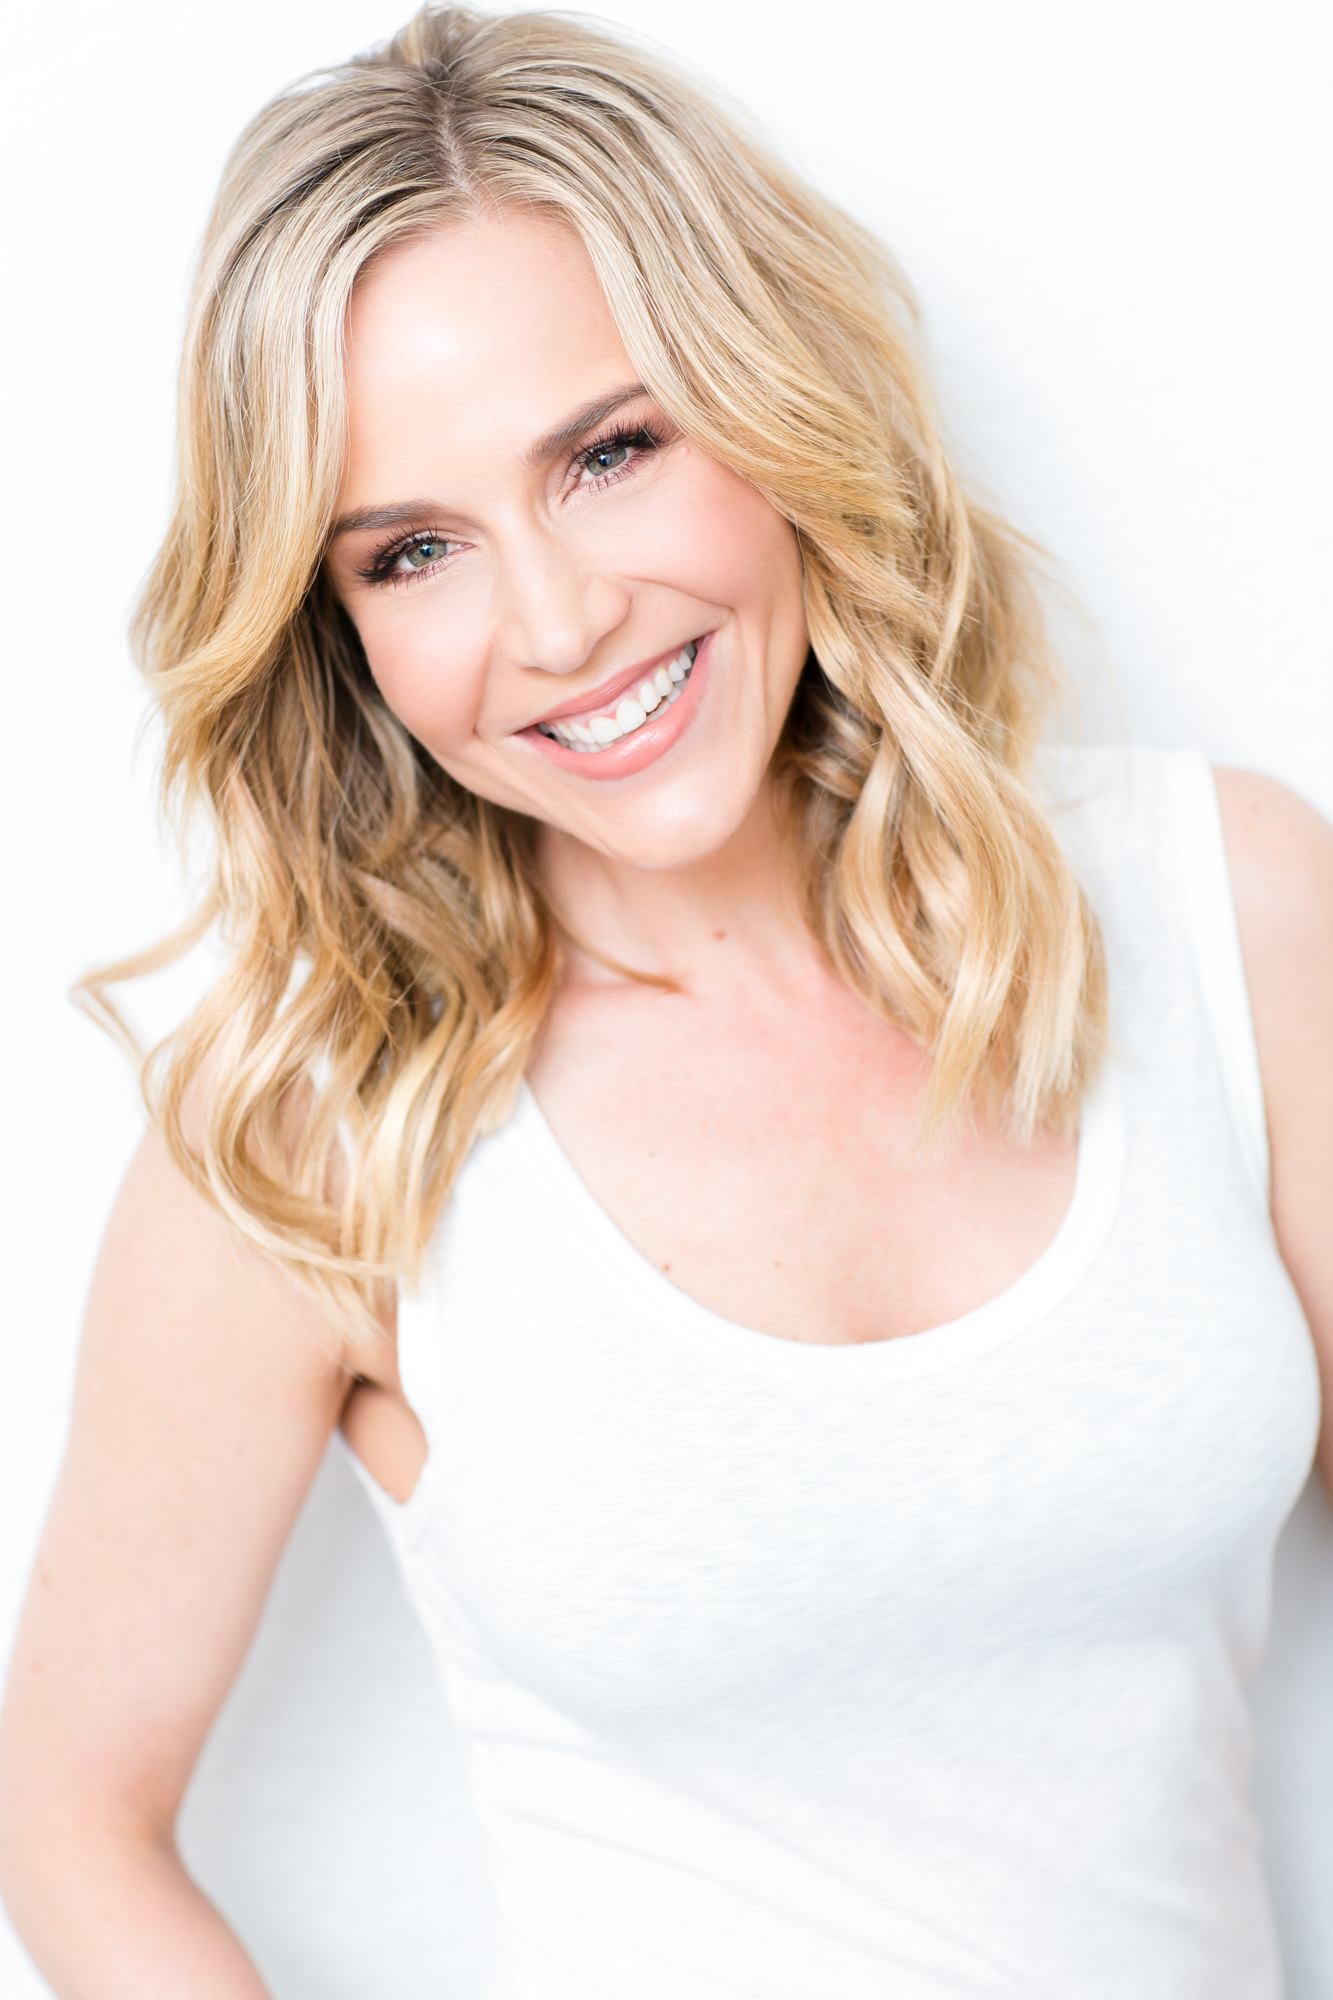 20150708_2015.07.08_JulieBenz_website_UD9A7652-Edit copy.jpg